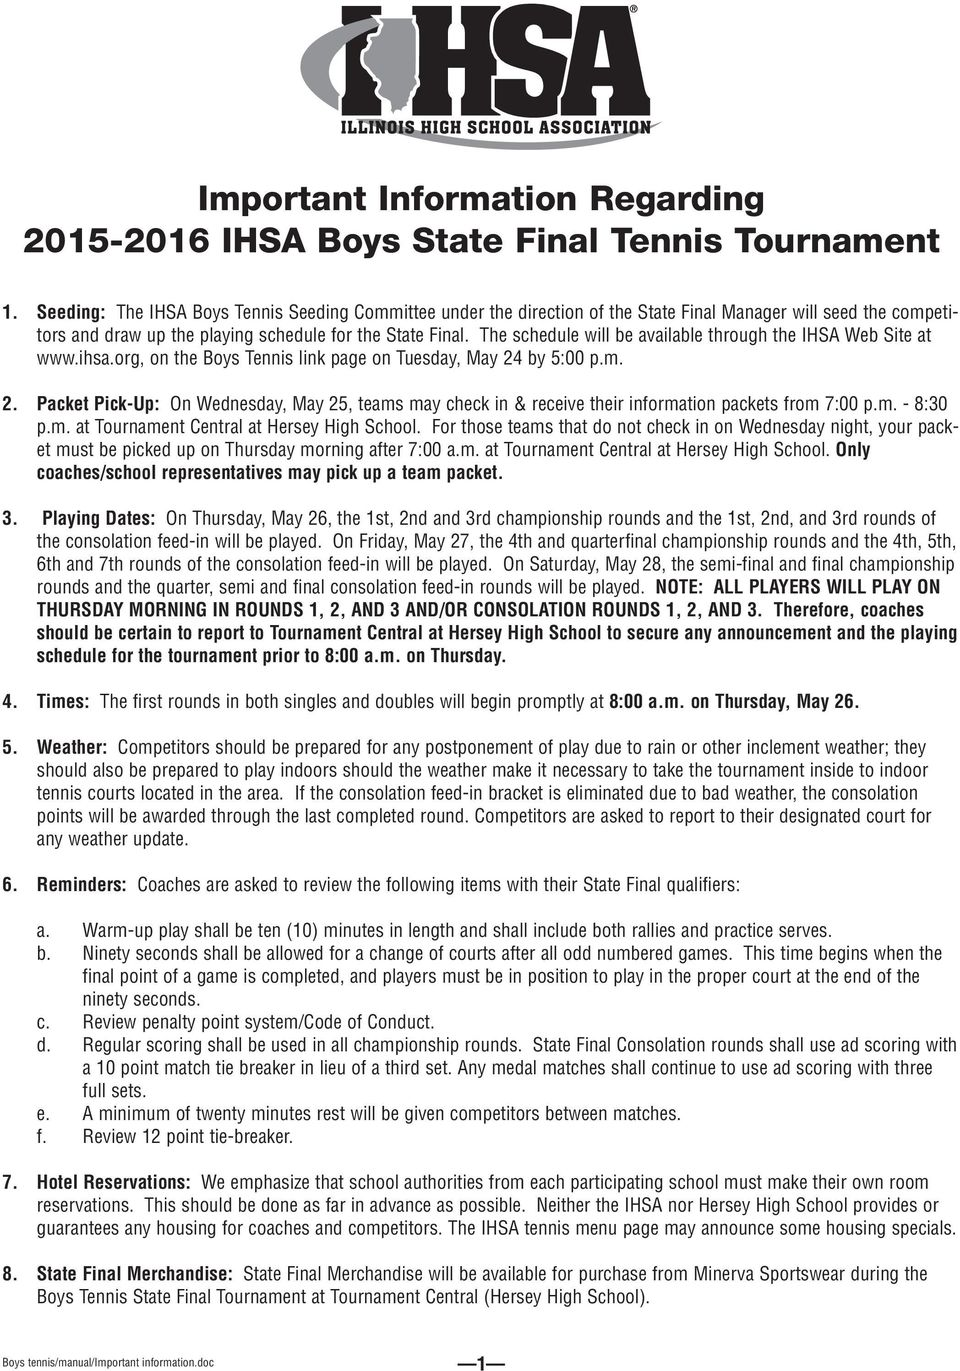 The schedule will be available through the IHSA Web Site at www.ihsa.org, on the Boys Tennis link page on Tuesday, May 24